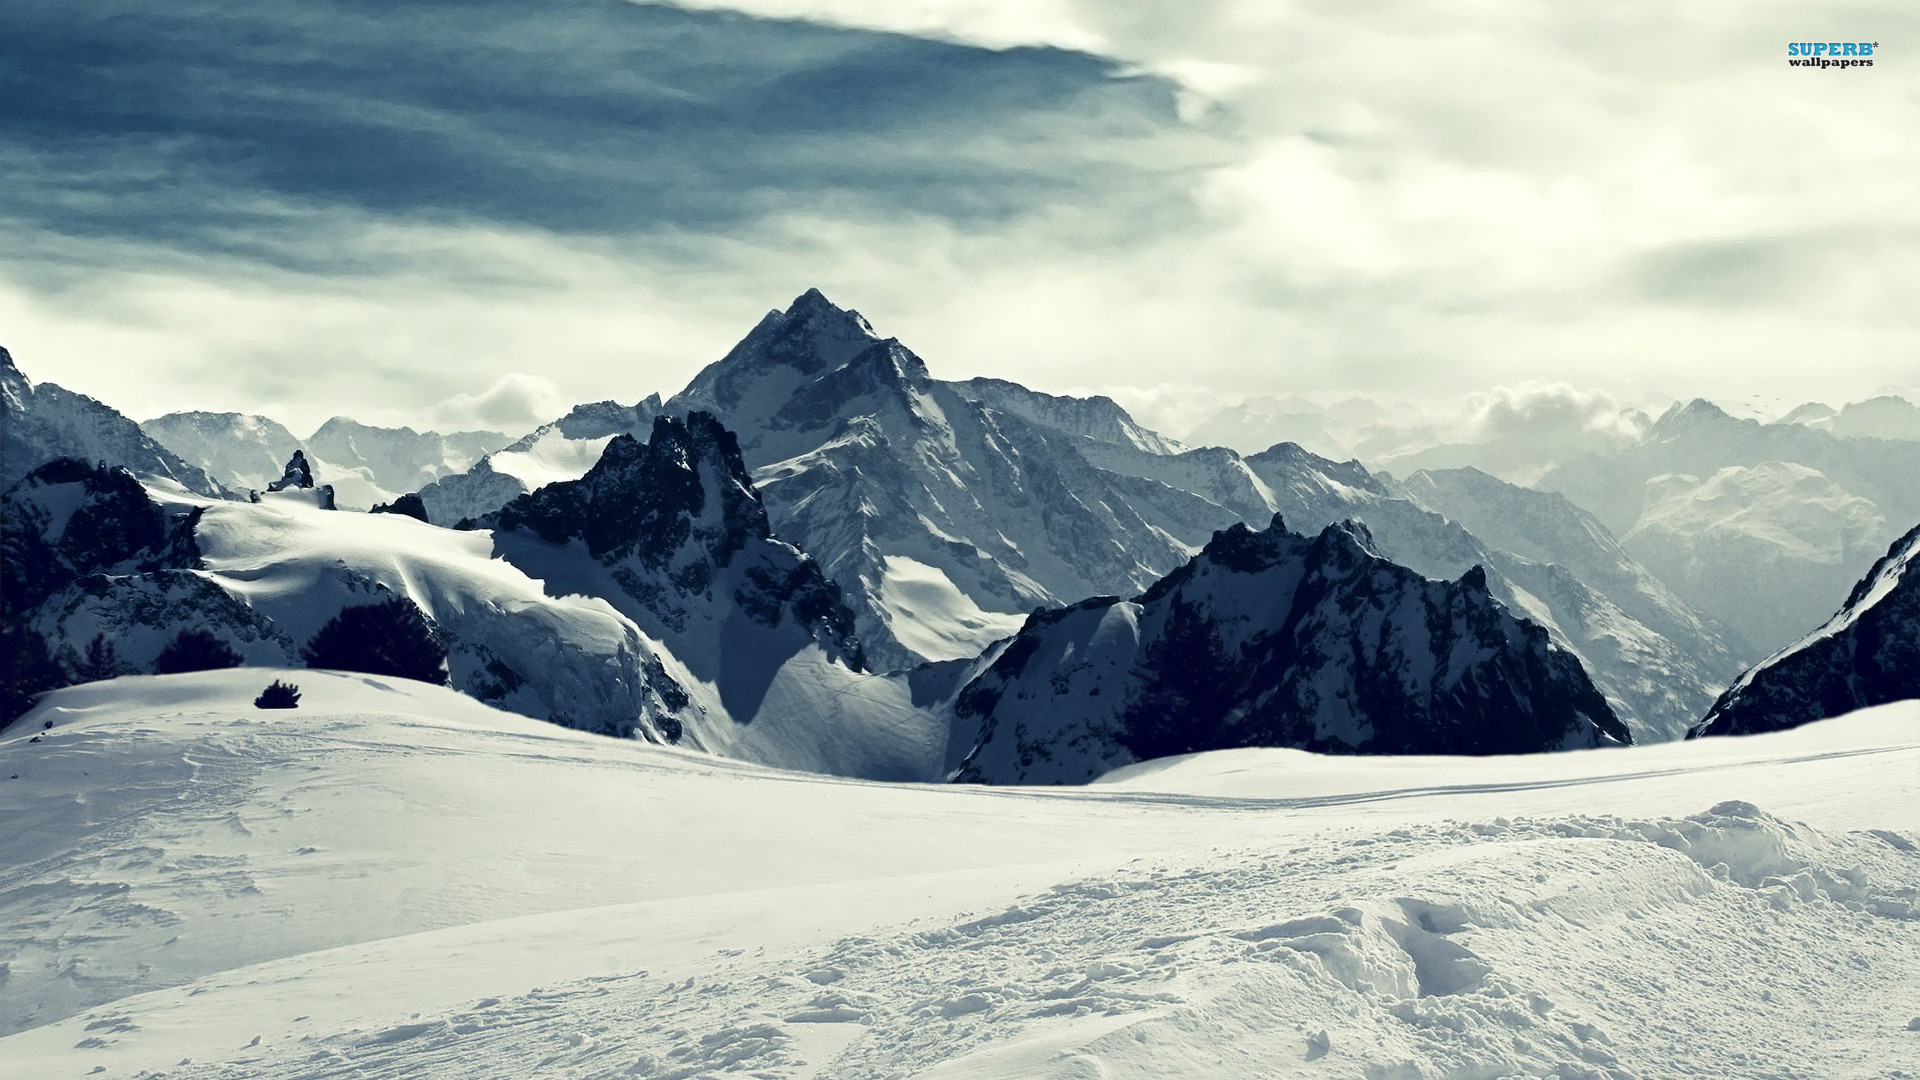 covered mountain 1920x1200 hd - photo #19